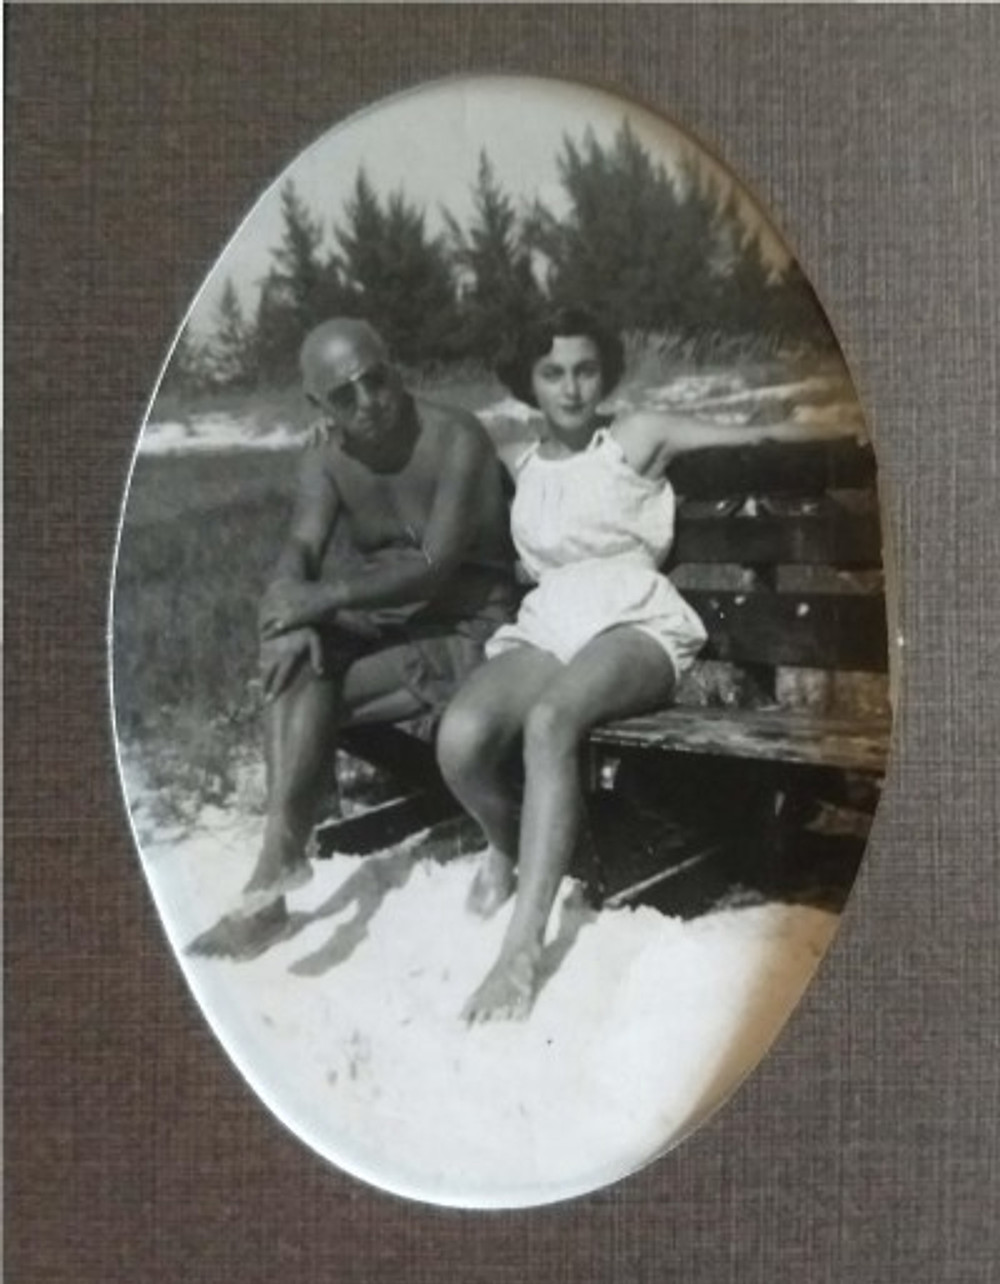 My father, Daniel, and me enjoying a day at the beach, c. 1954.